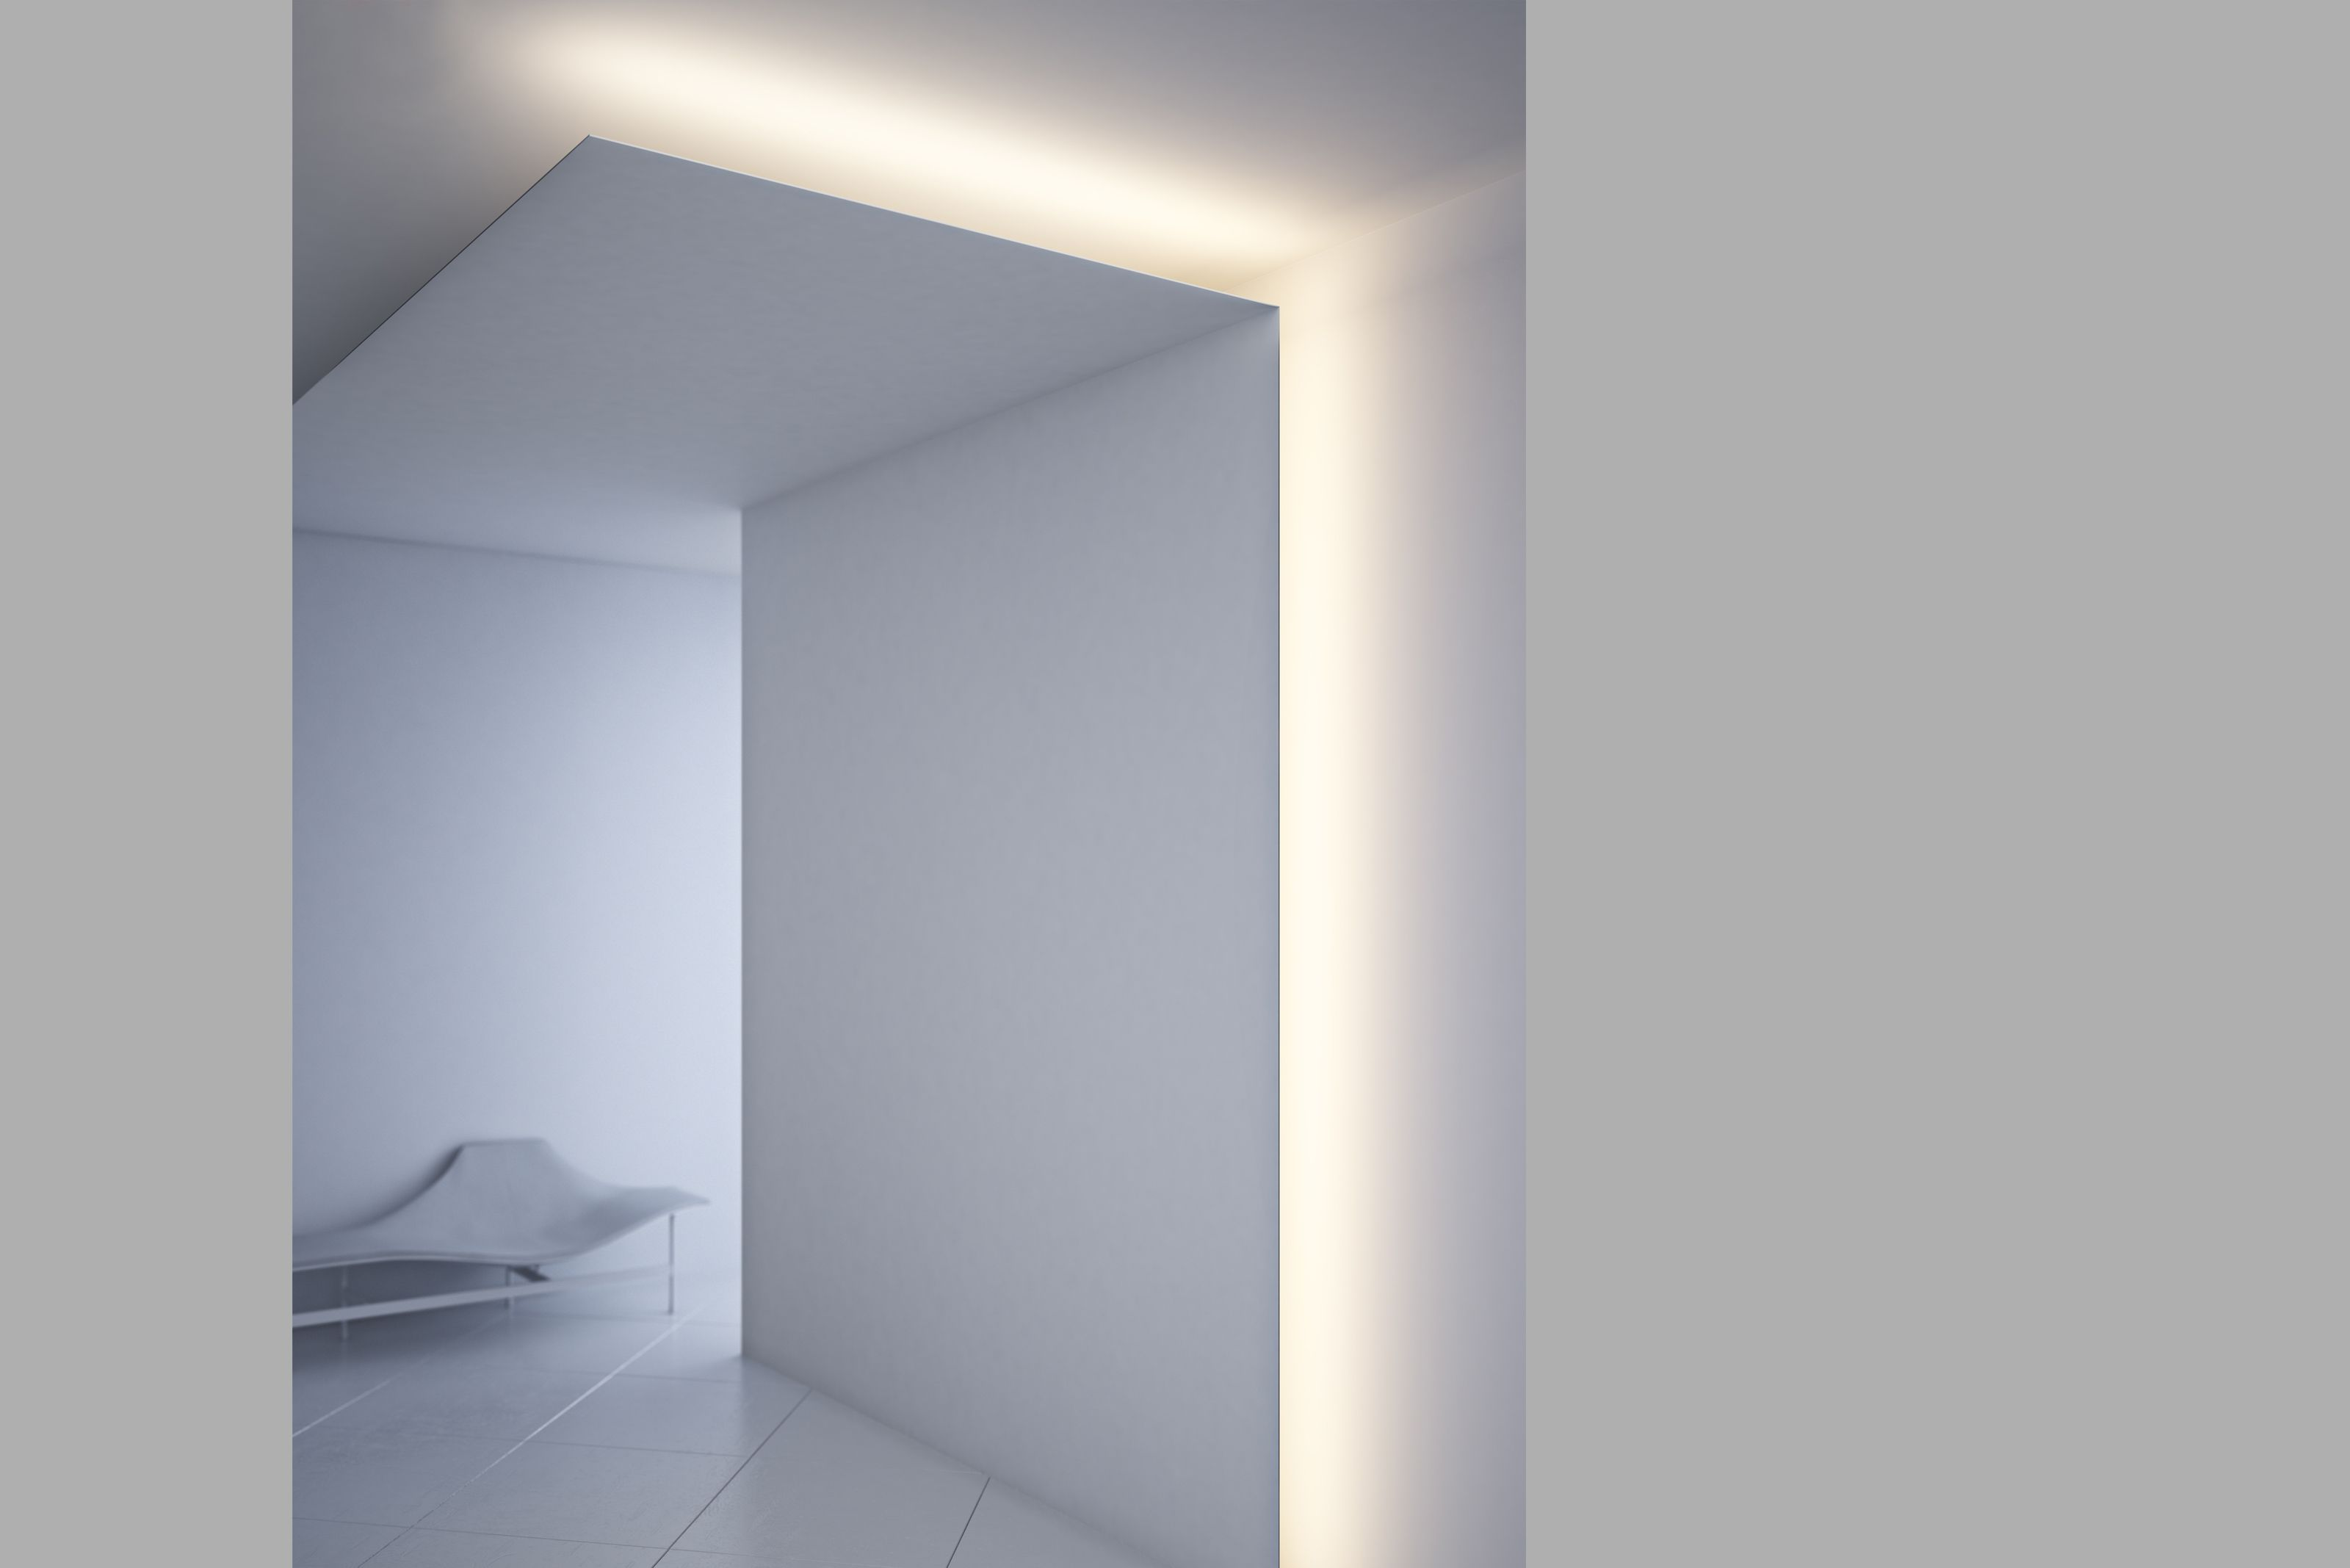 lightline-cala-h-4-mj-lighting-v2